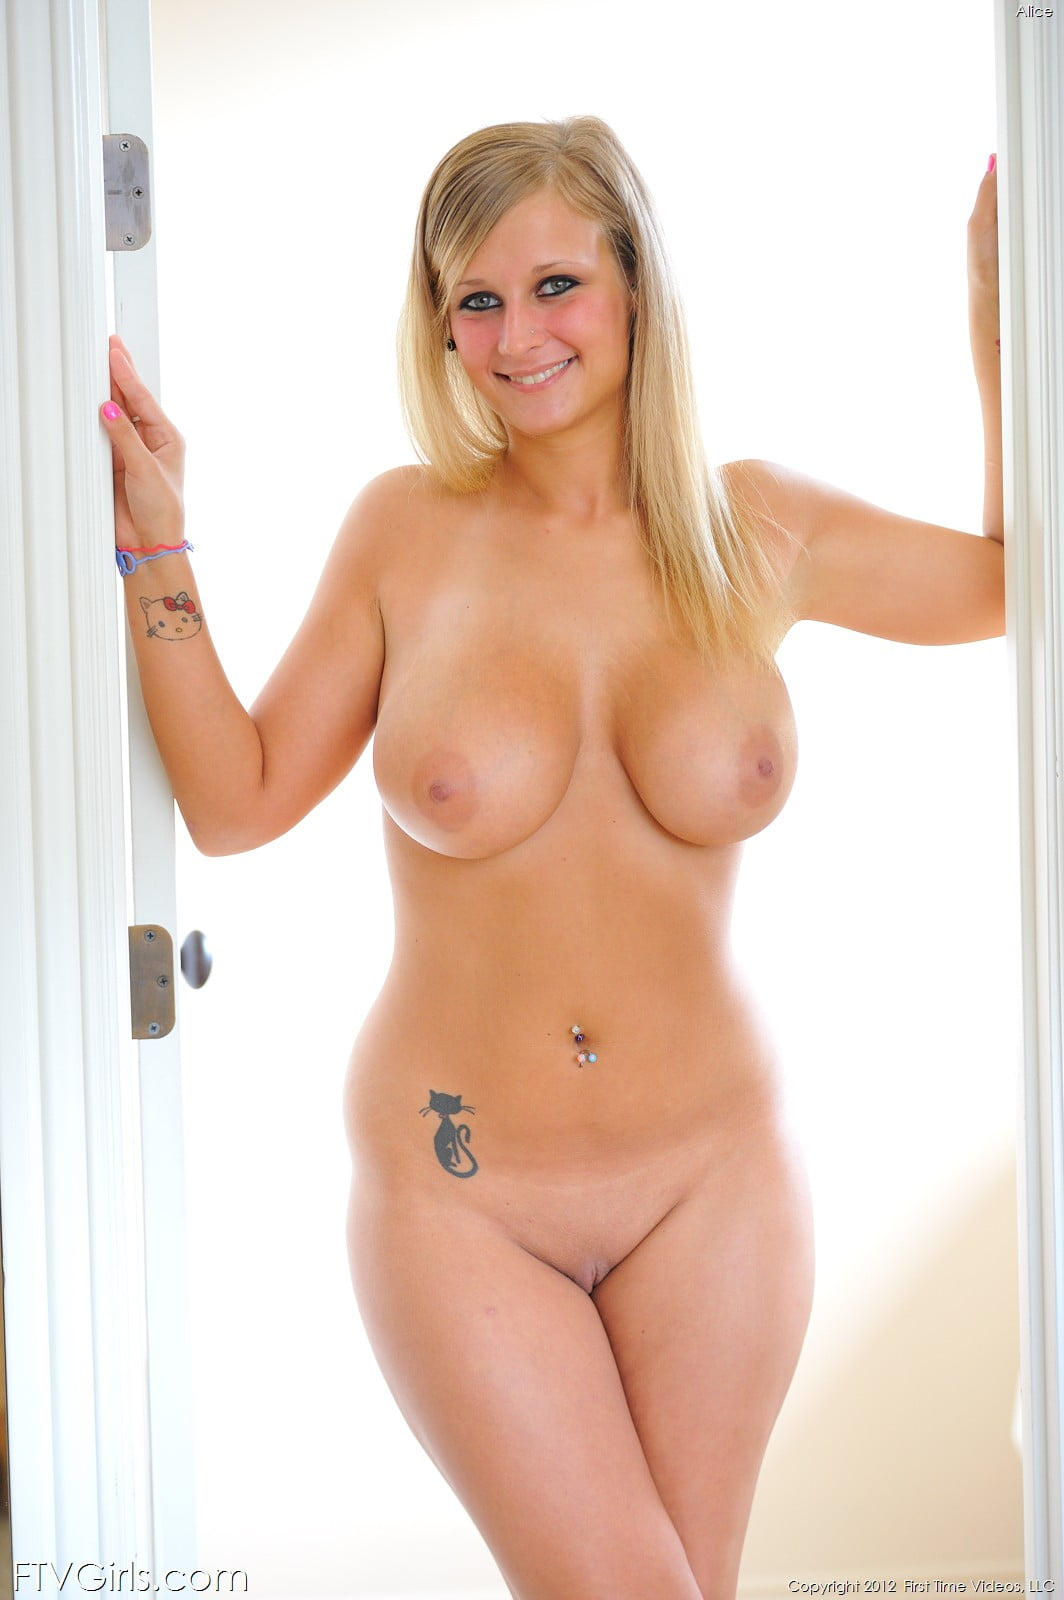 Ftv Alice Blonde Babe Big Natural Tits All Nude-6725